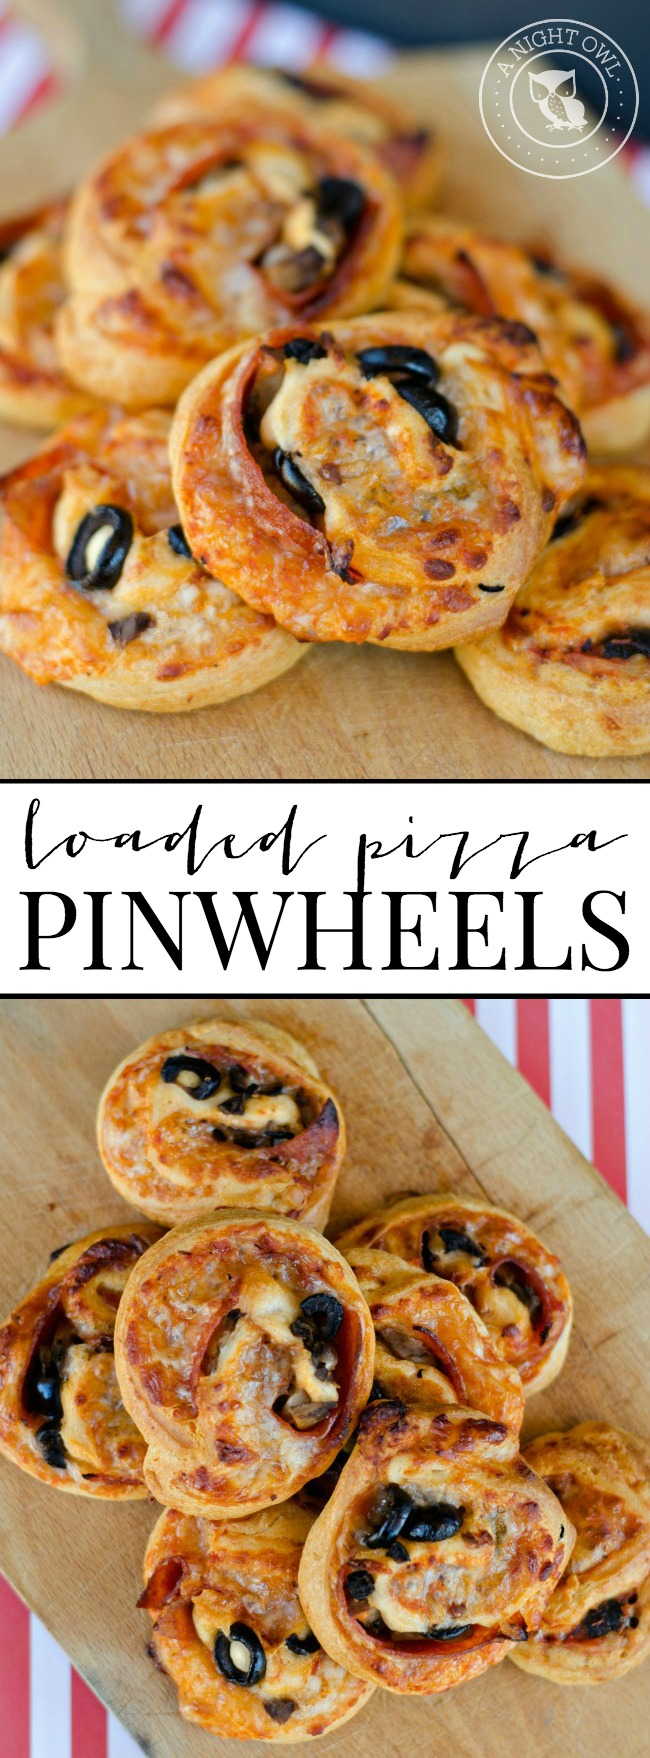 Loaded Pizza Pinwheels | anightowlblog.com